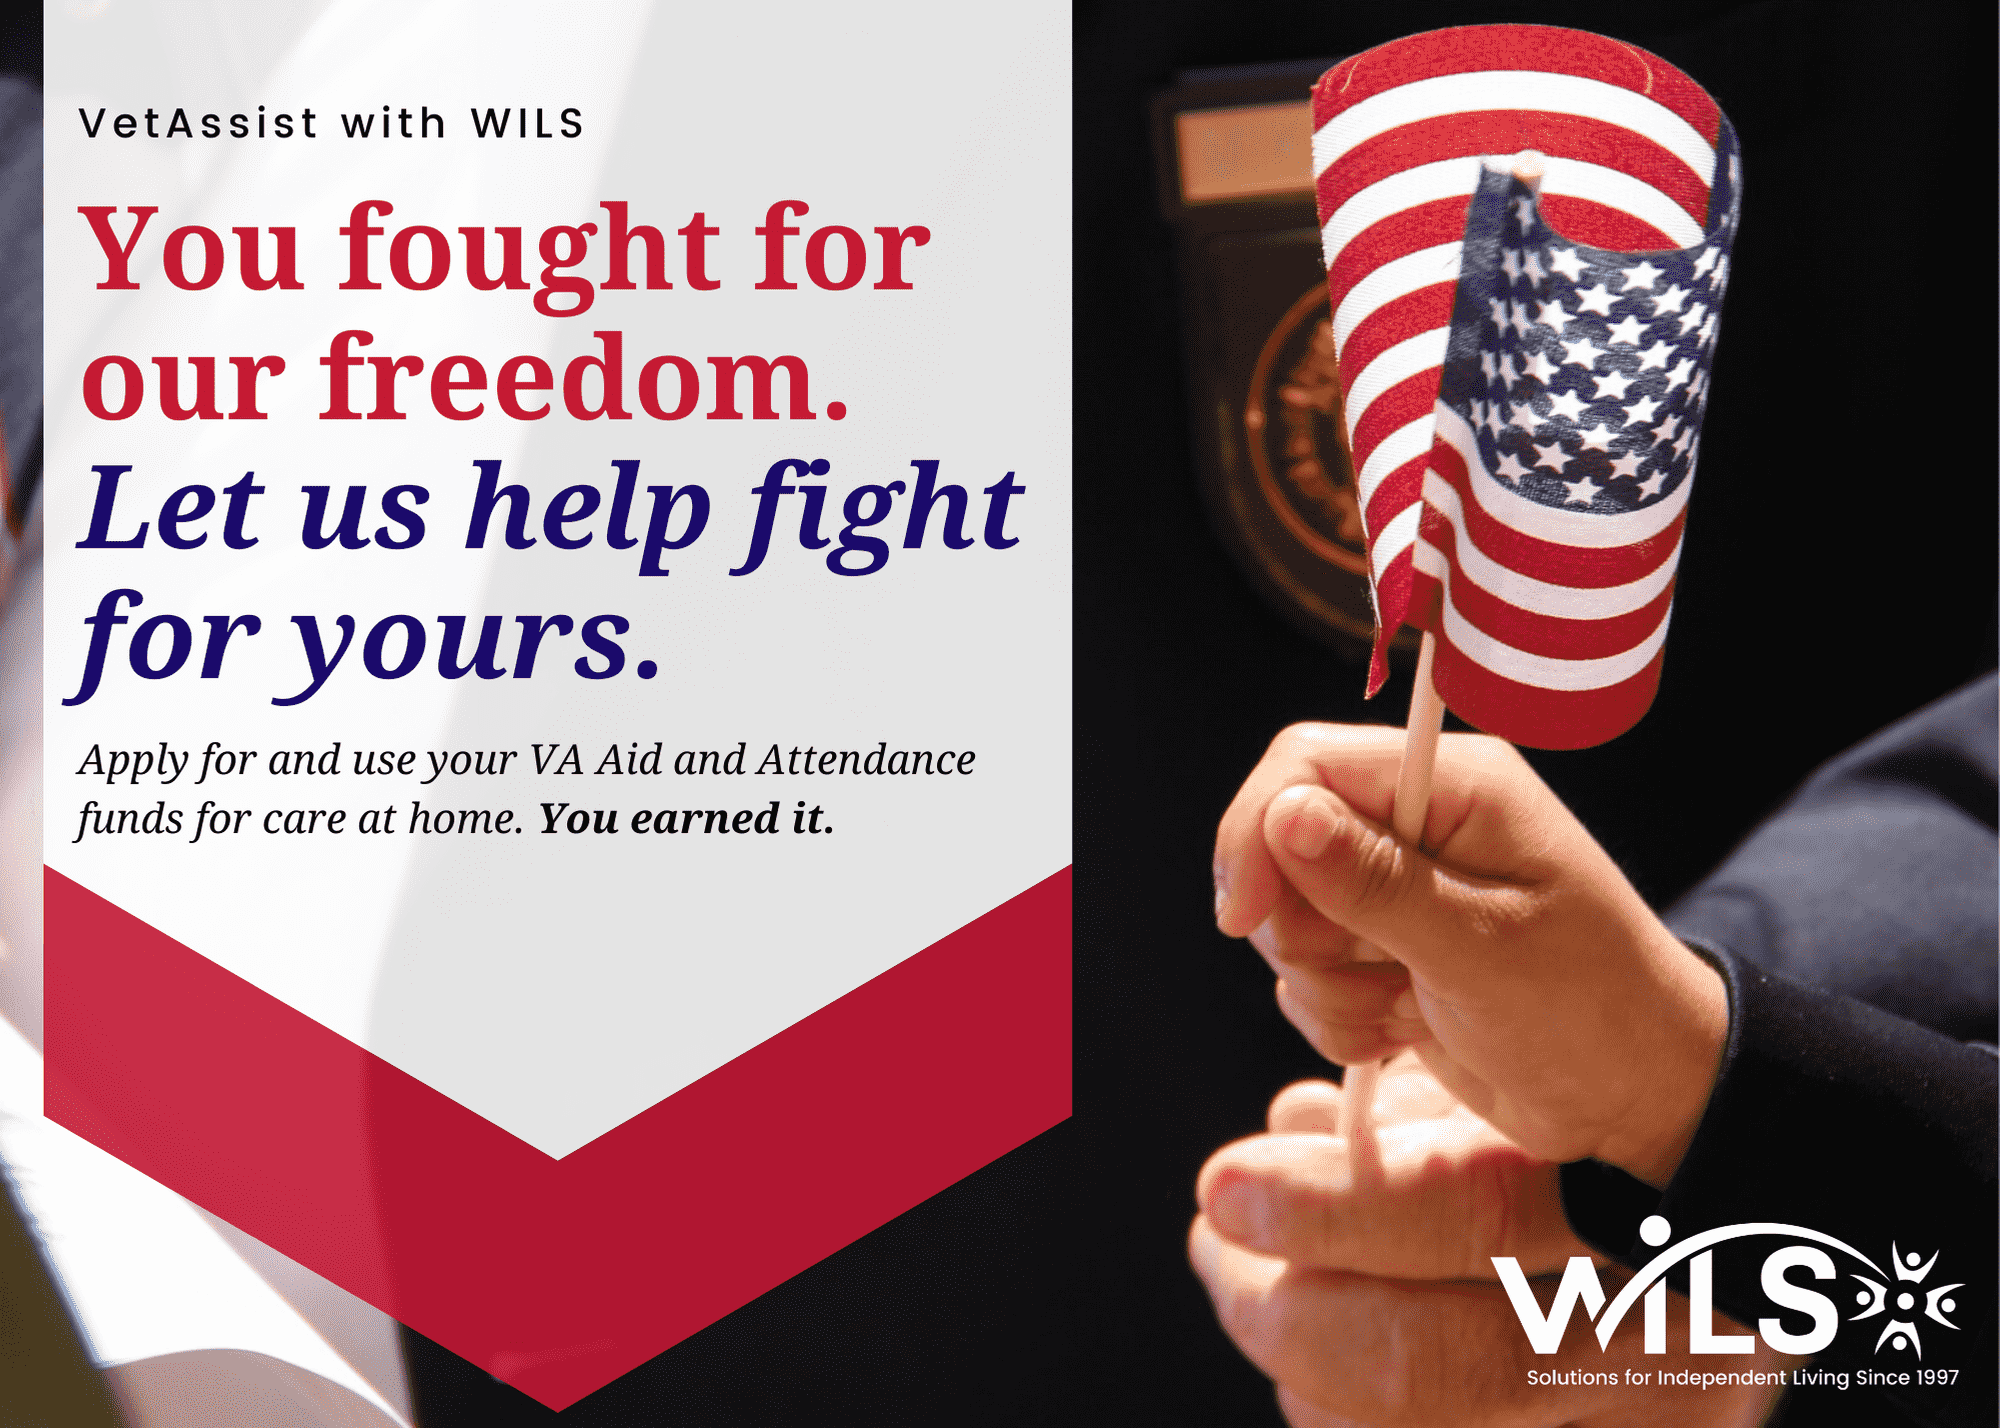 You fought for our freedom. Let us help fight for yours. Older hand and younger hand hold an American flag.